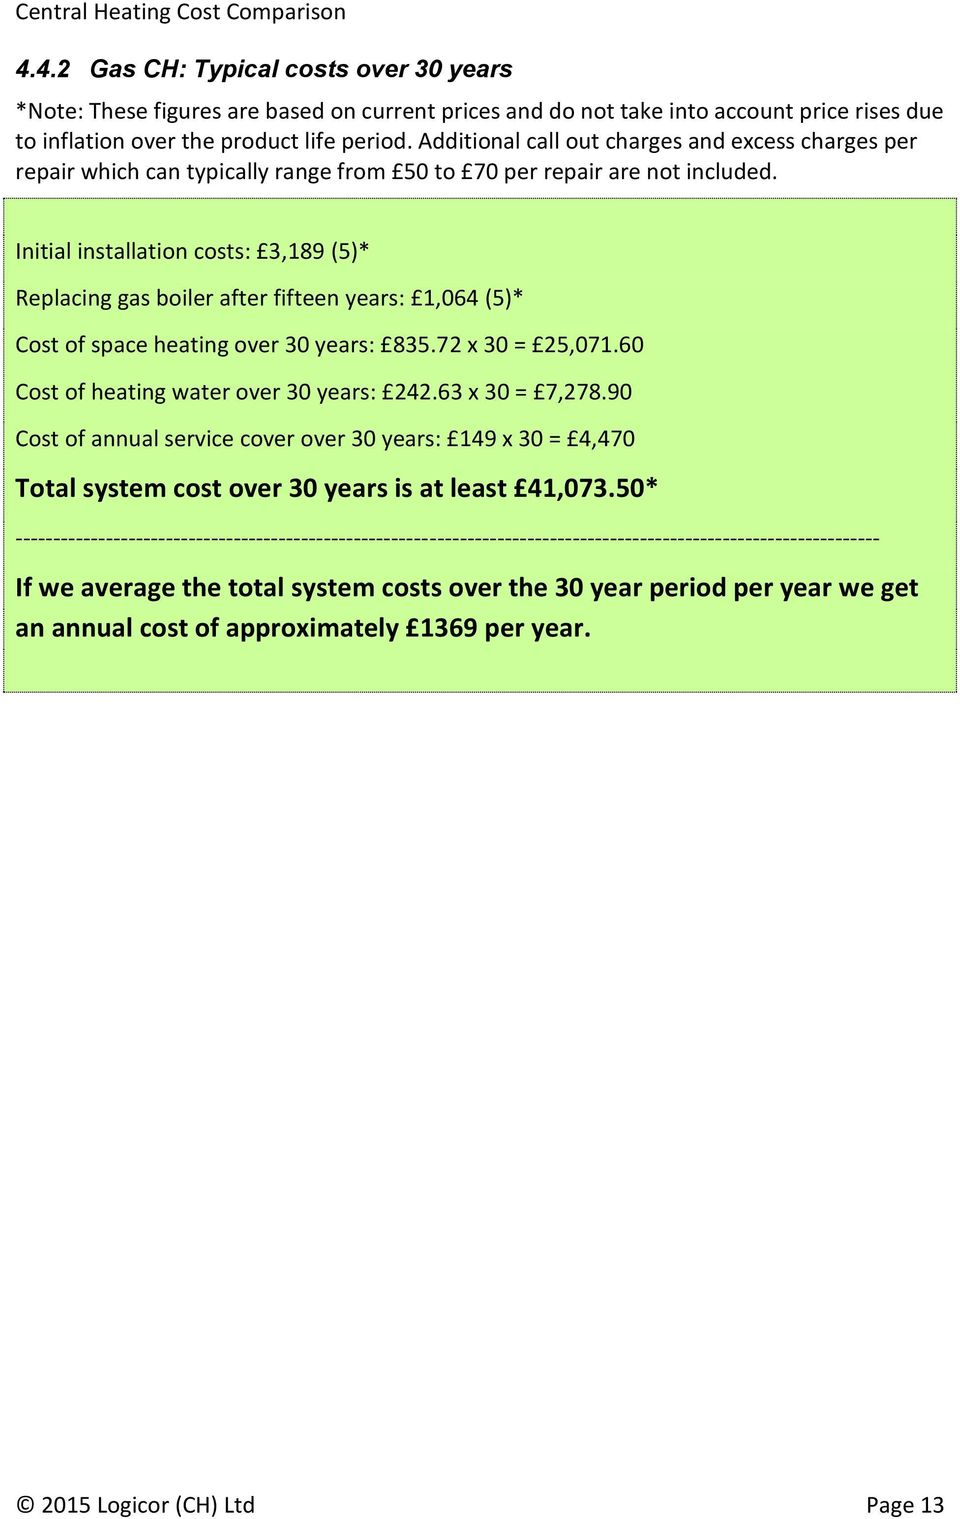 Central Heating Cost Comparison Pdf Average Of Rewiring A Terraced House Initial Installation Costs 3189 5 Replacing Gas Boiler After Fifteen Years